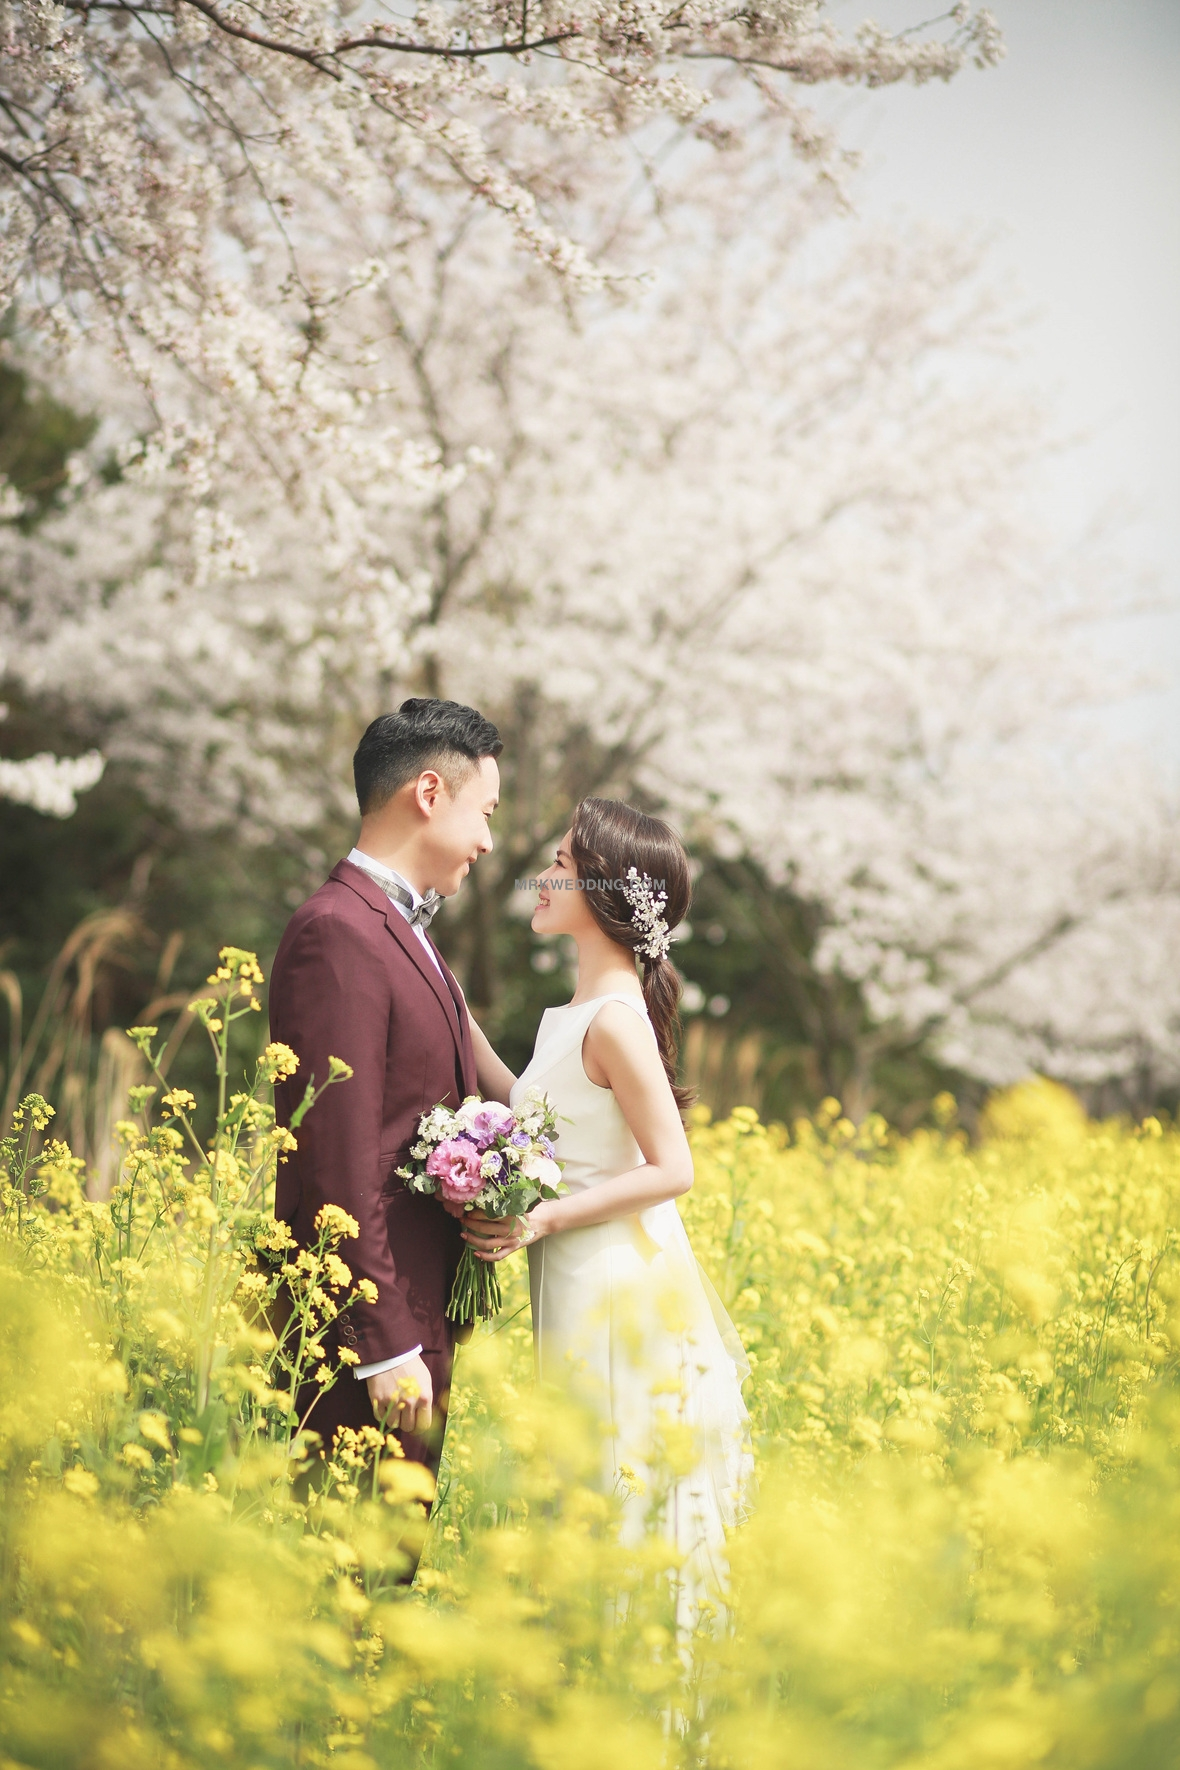 MrK Korea Wedding (25).jpg